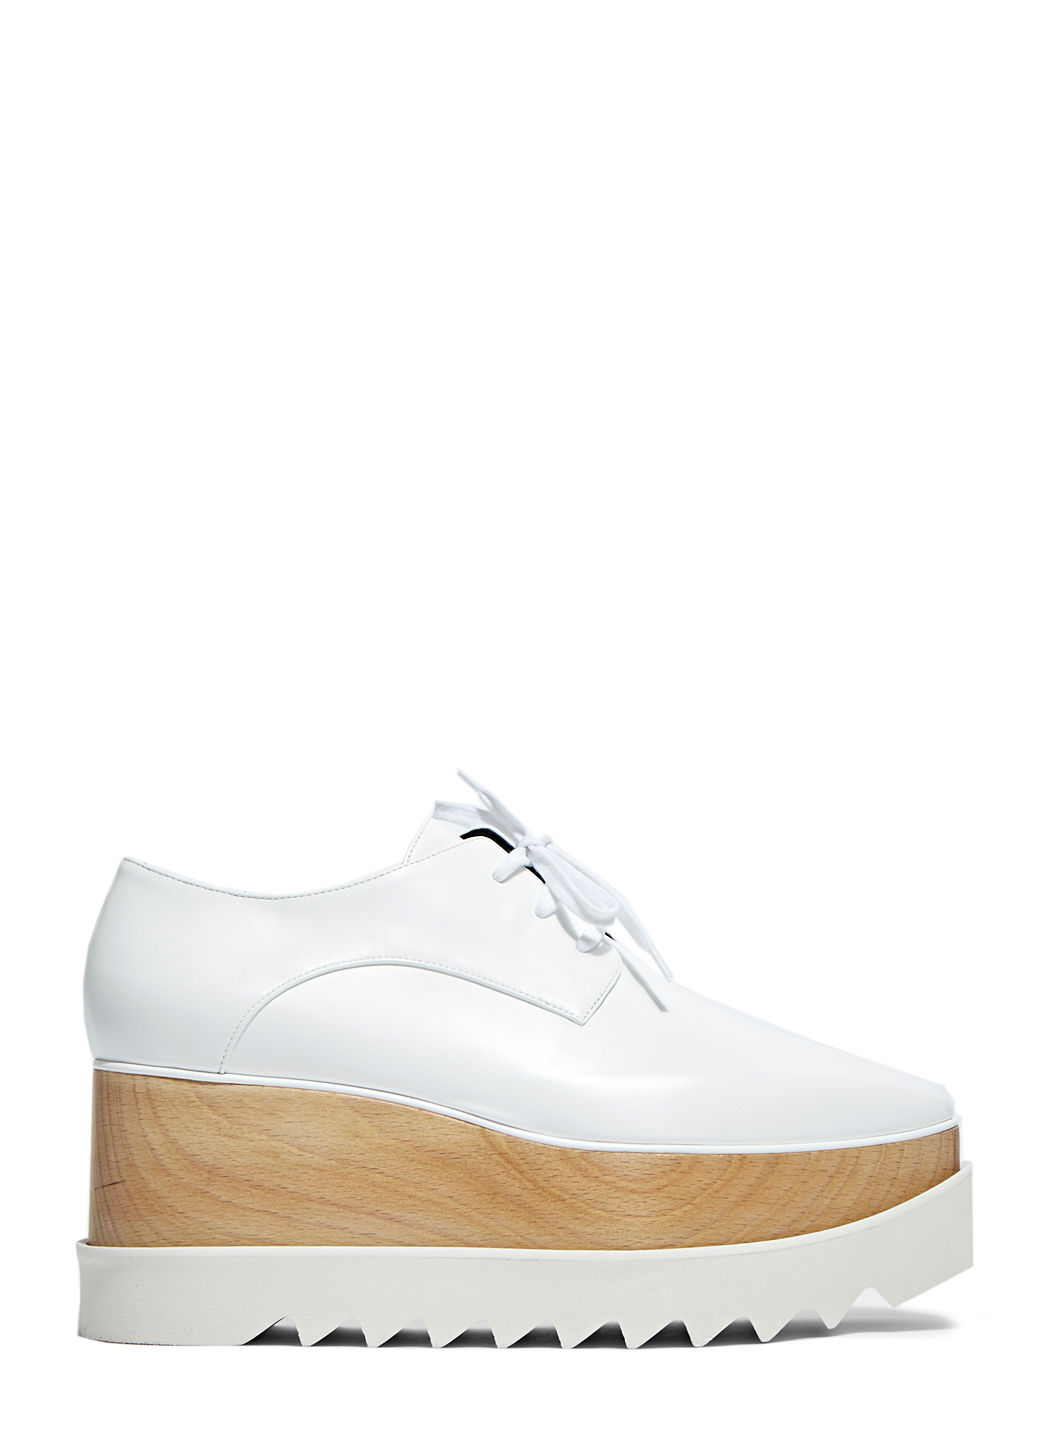 75Mm Elise Faux Leather Wedged Shoes, White